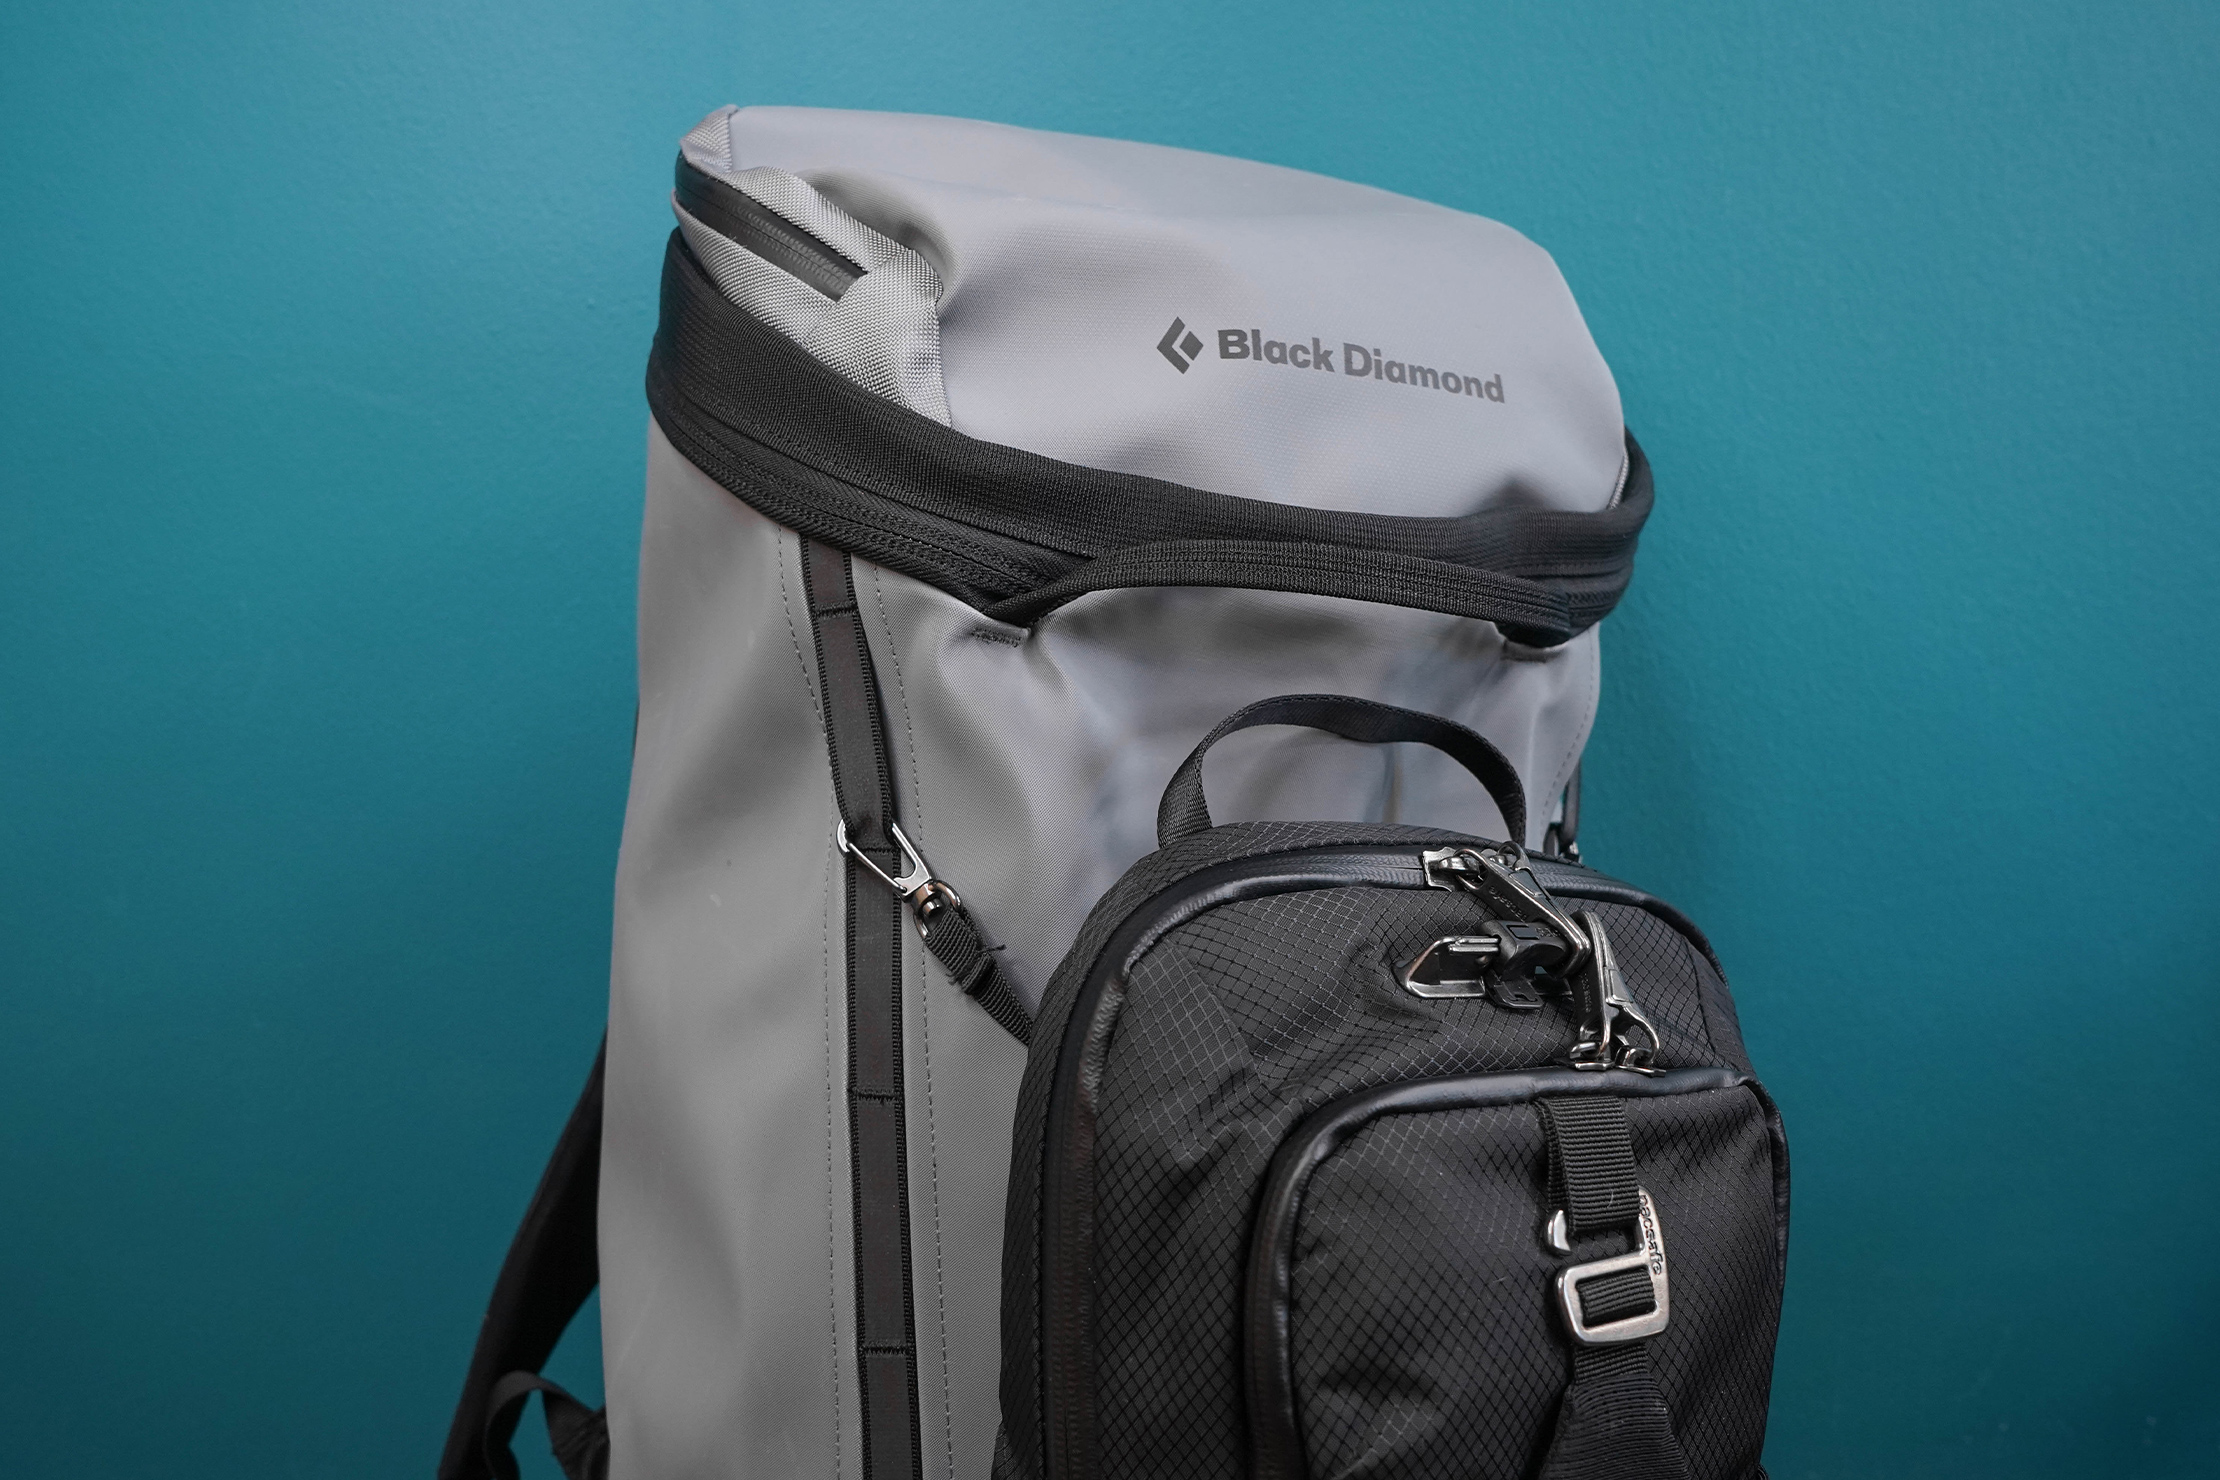 Pacsafe Venturesafe X Anti-Theft Sling Pack Attached To Bag